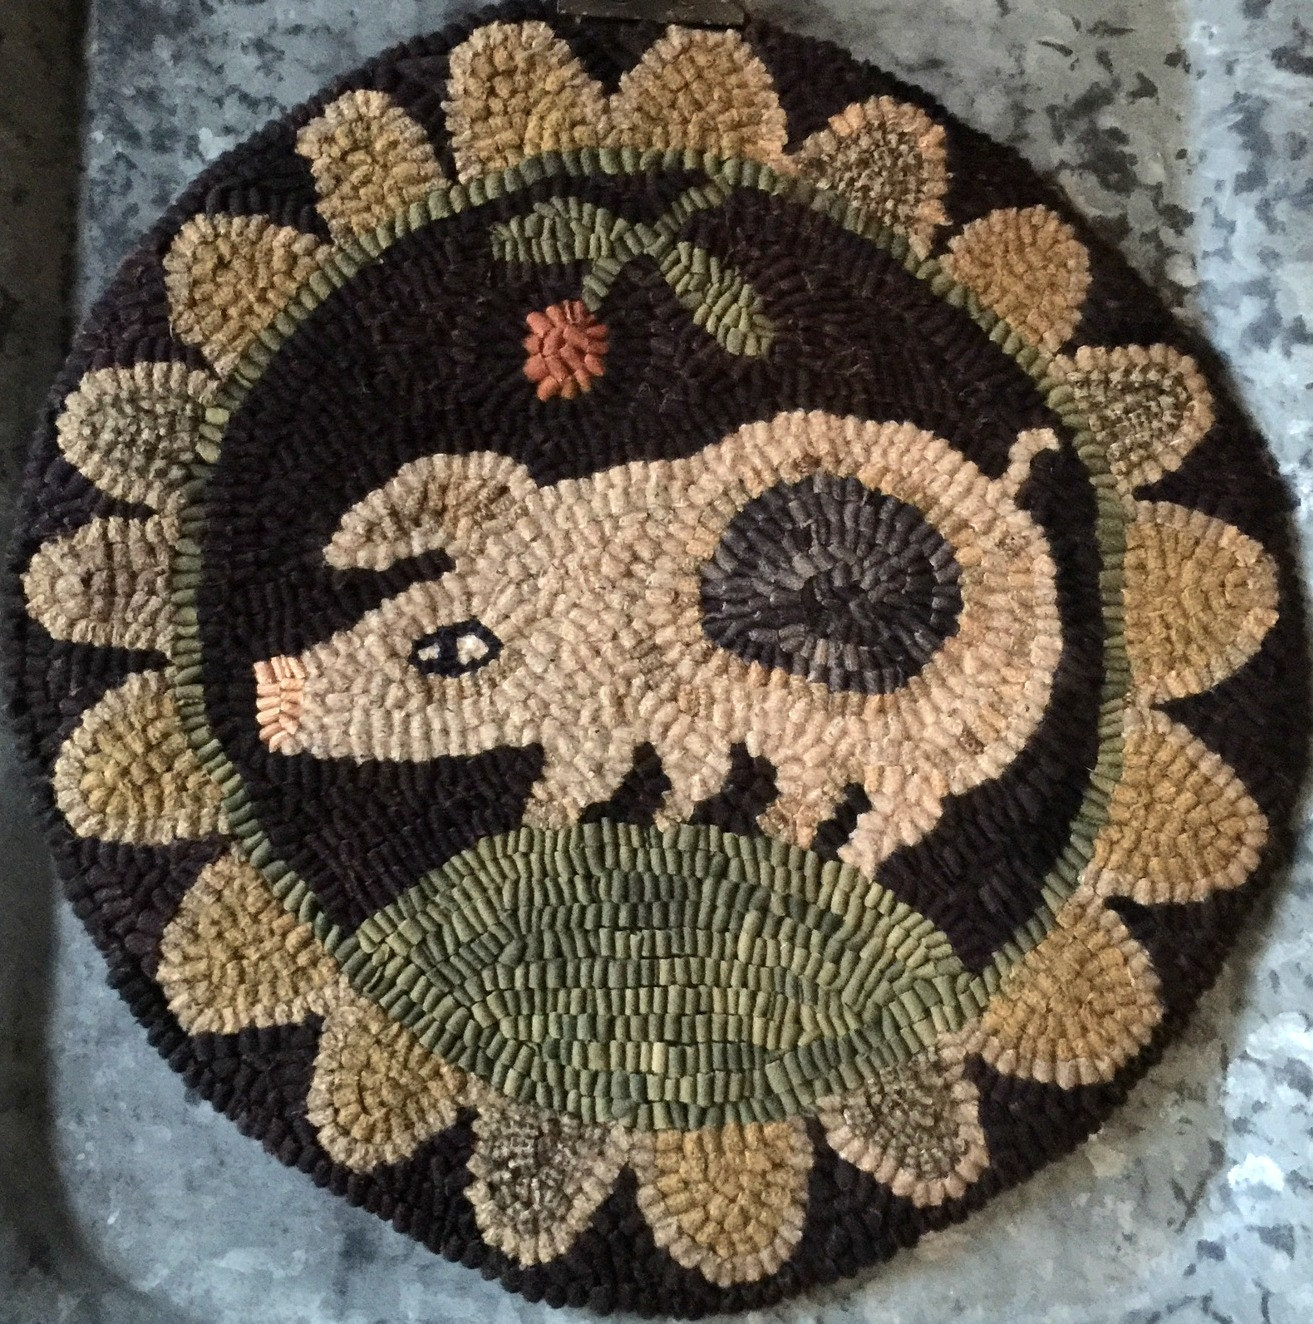 Genial Spotted Pig   PAPER Rug Hooking Pattern From My Winter Cottage. Paper  Pattern Only. Chair Pad.